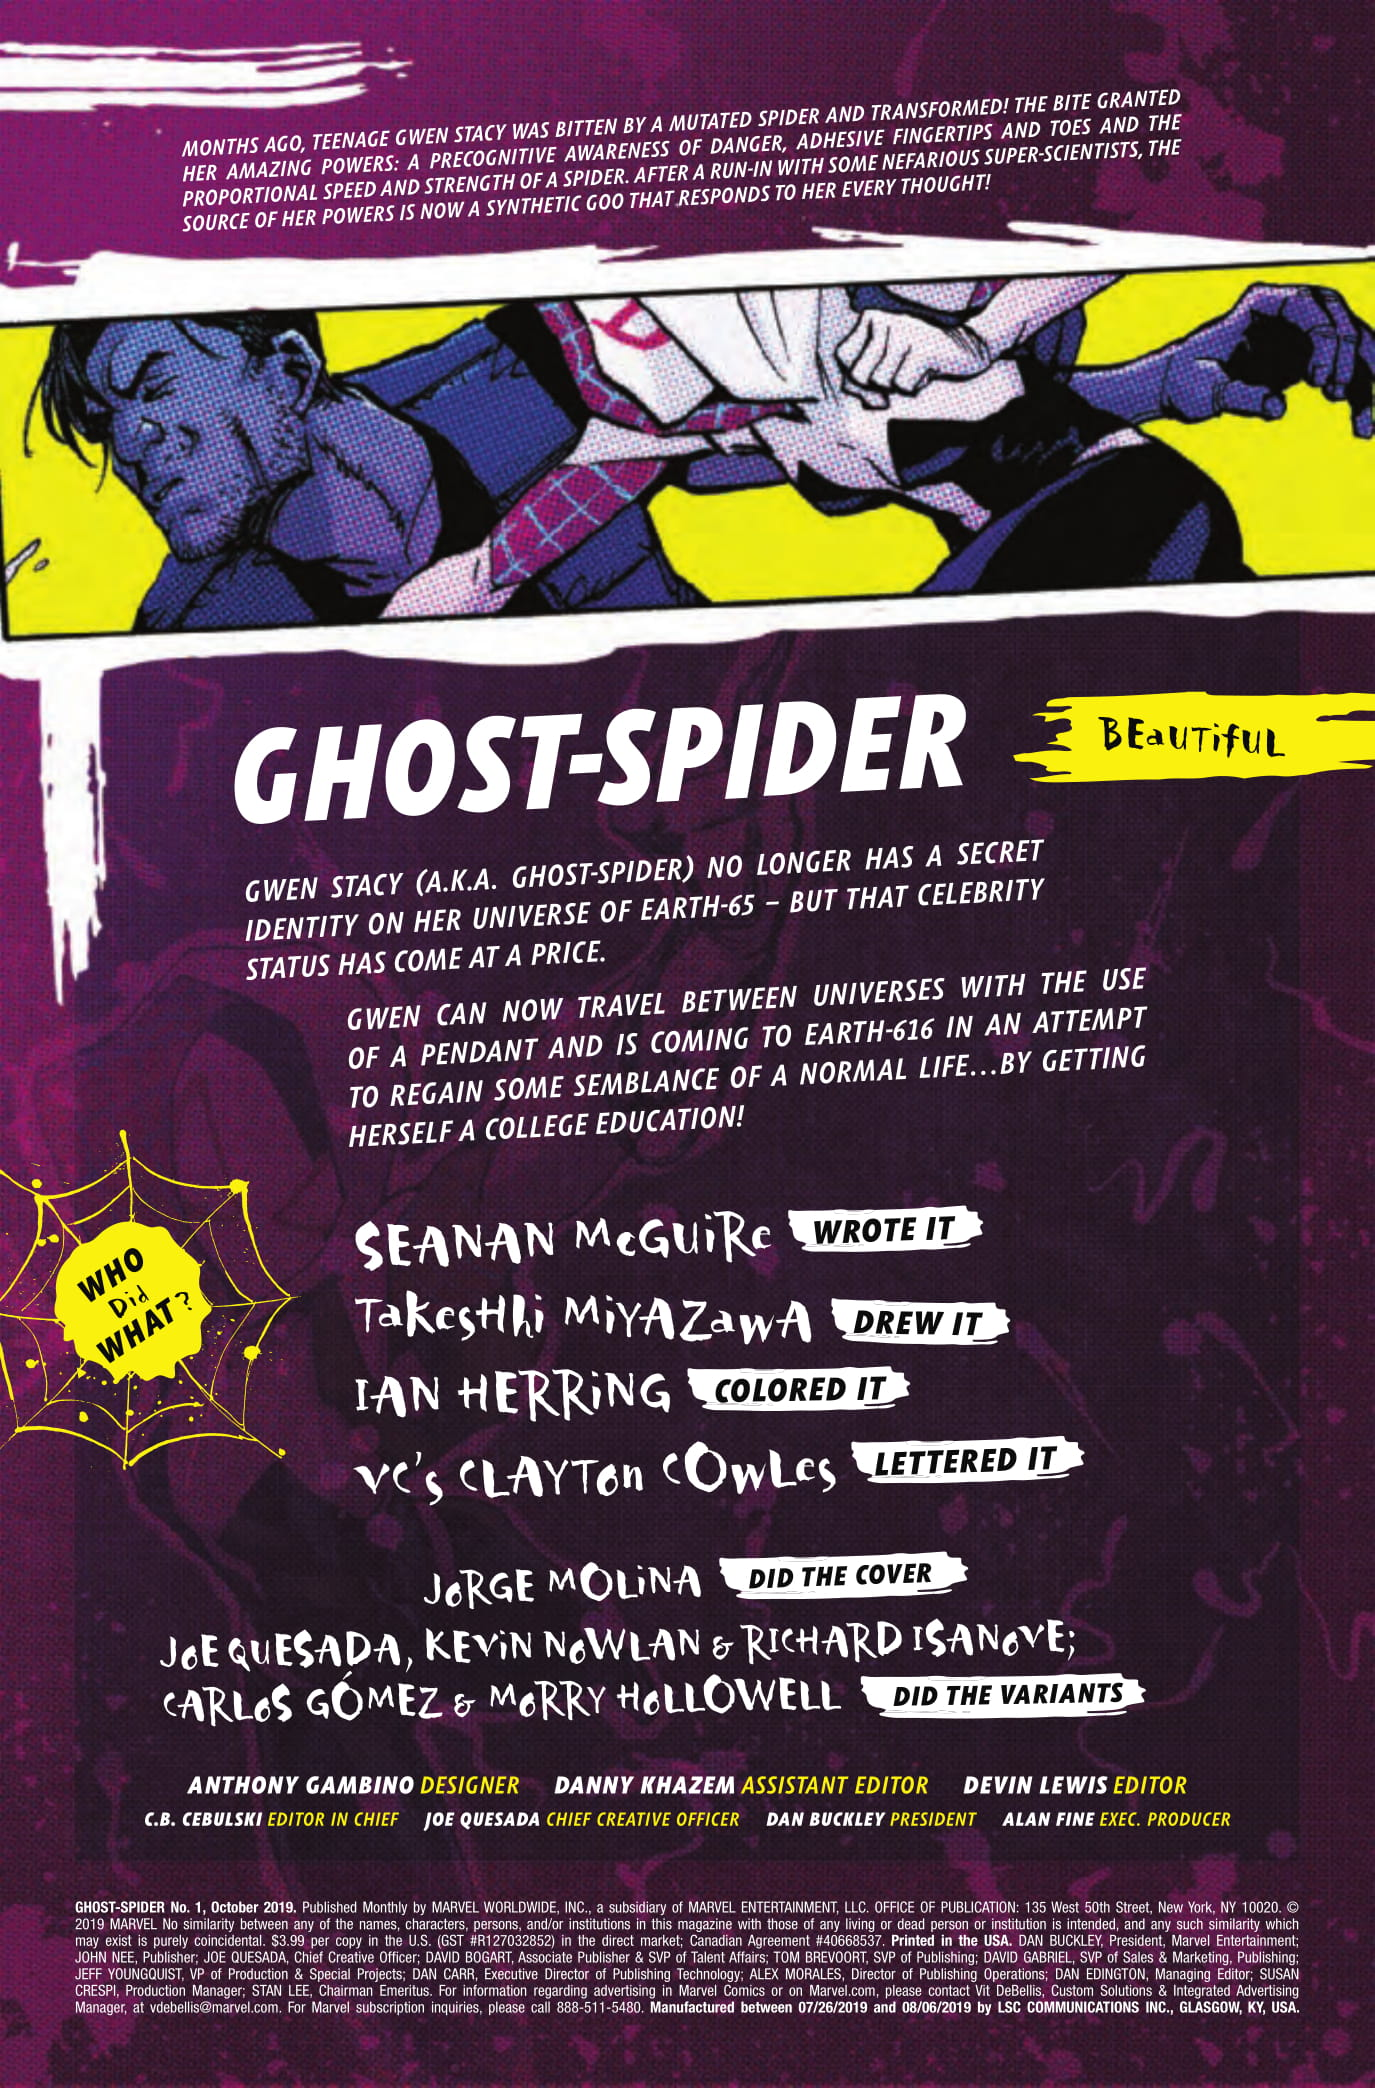 Ghost-Spider #1 credits